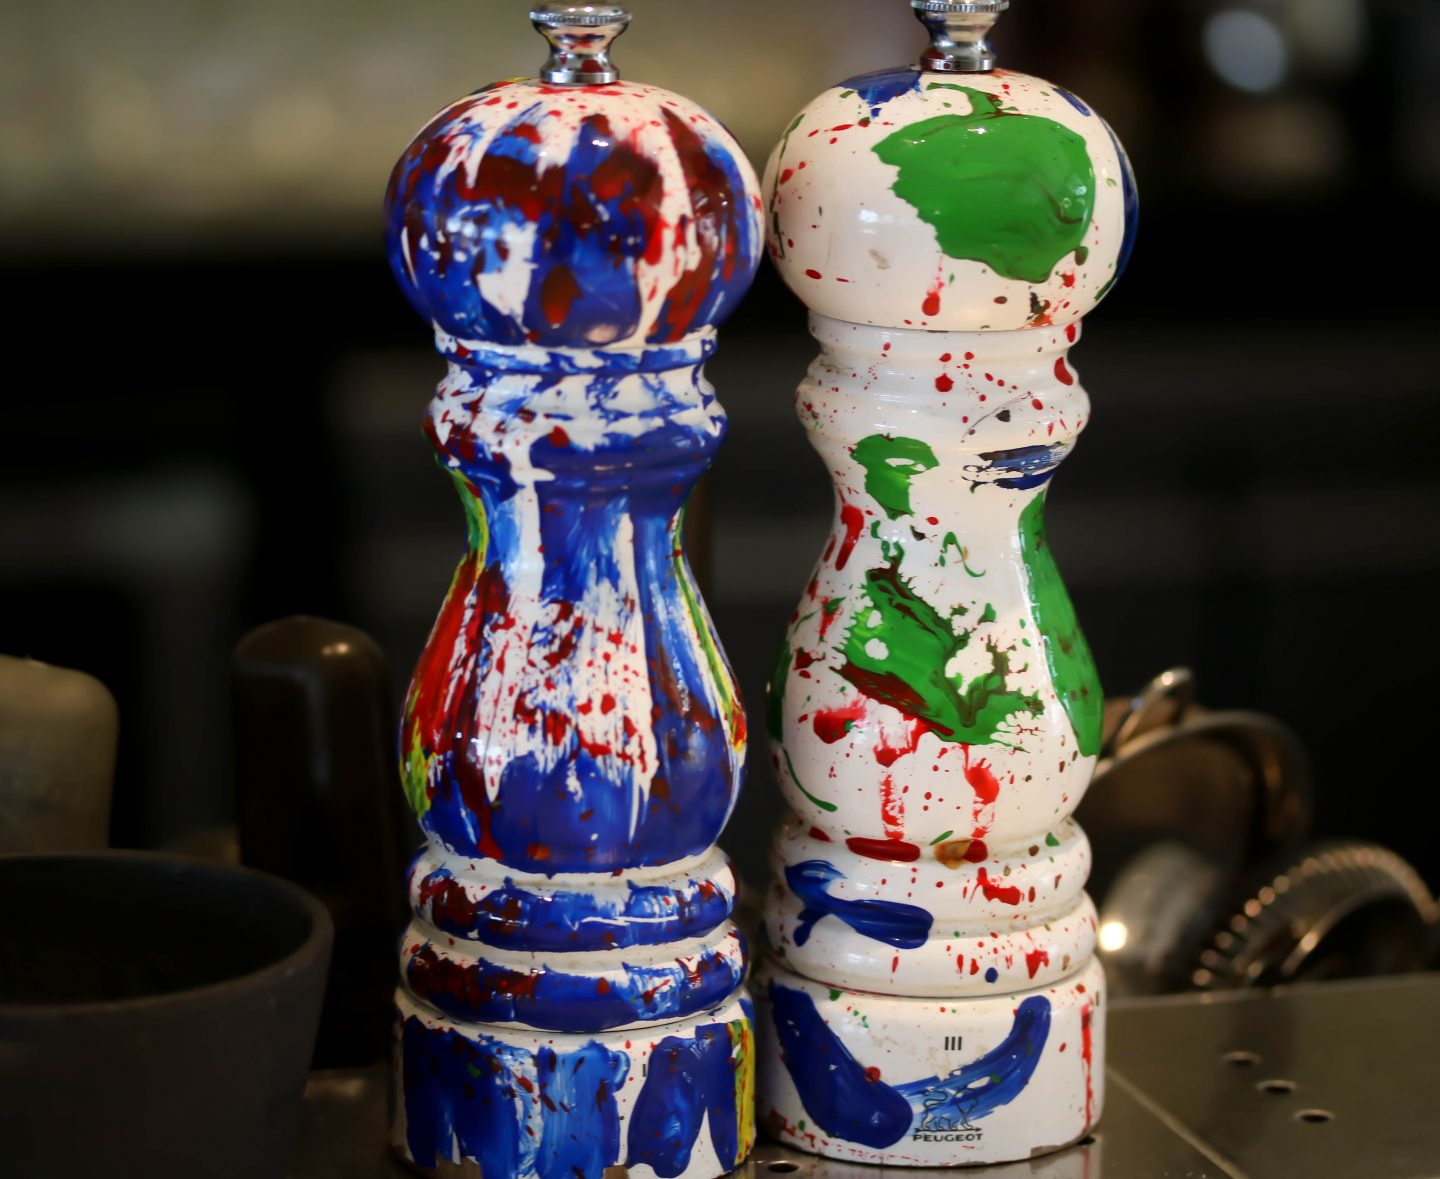 La Petite Maison - salt and pepper mills - best restaurant for lunch in Dubai on the Lifestyle Enthusiast blog